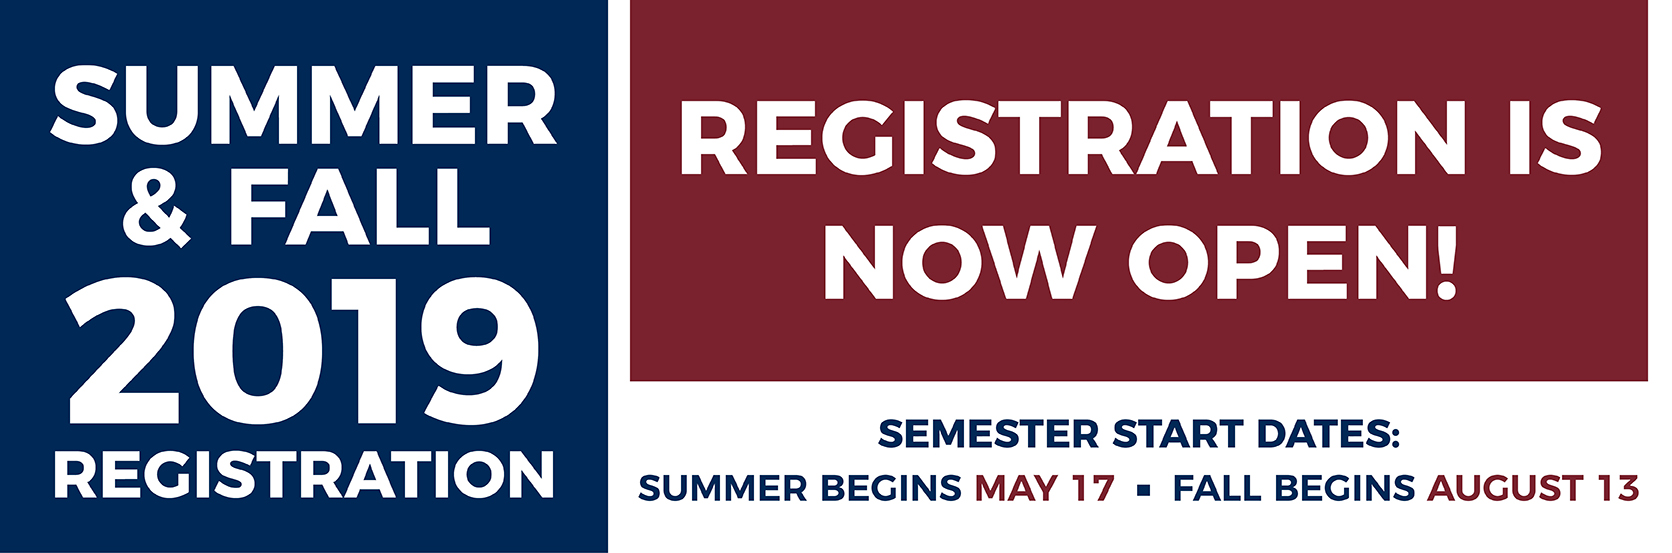 Registration Tile. Registration is open for current and returning students for Summer and Fall. Speak with an advisor today